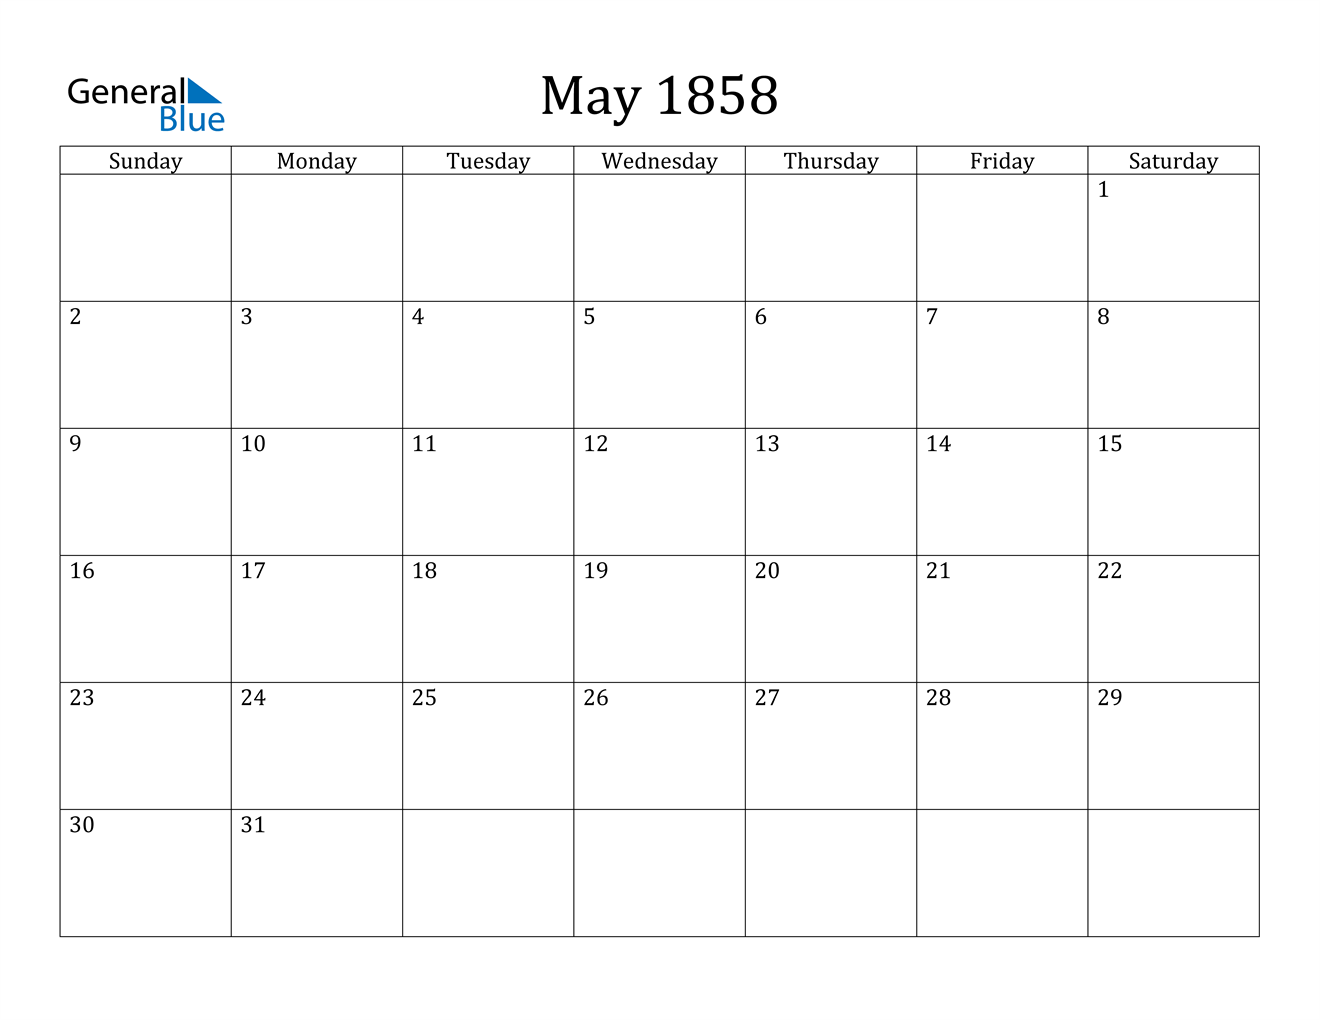 Image of May 1858 Calendar